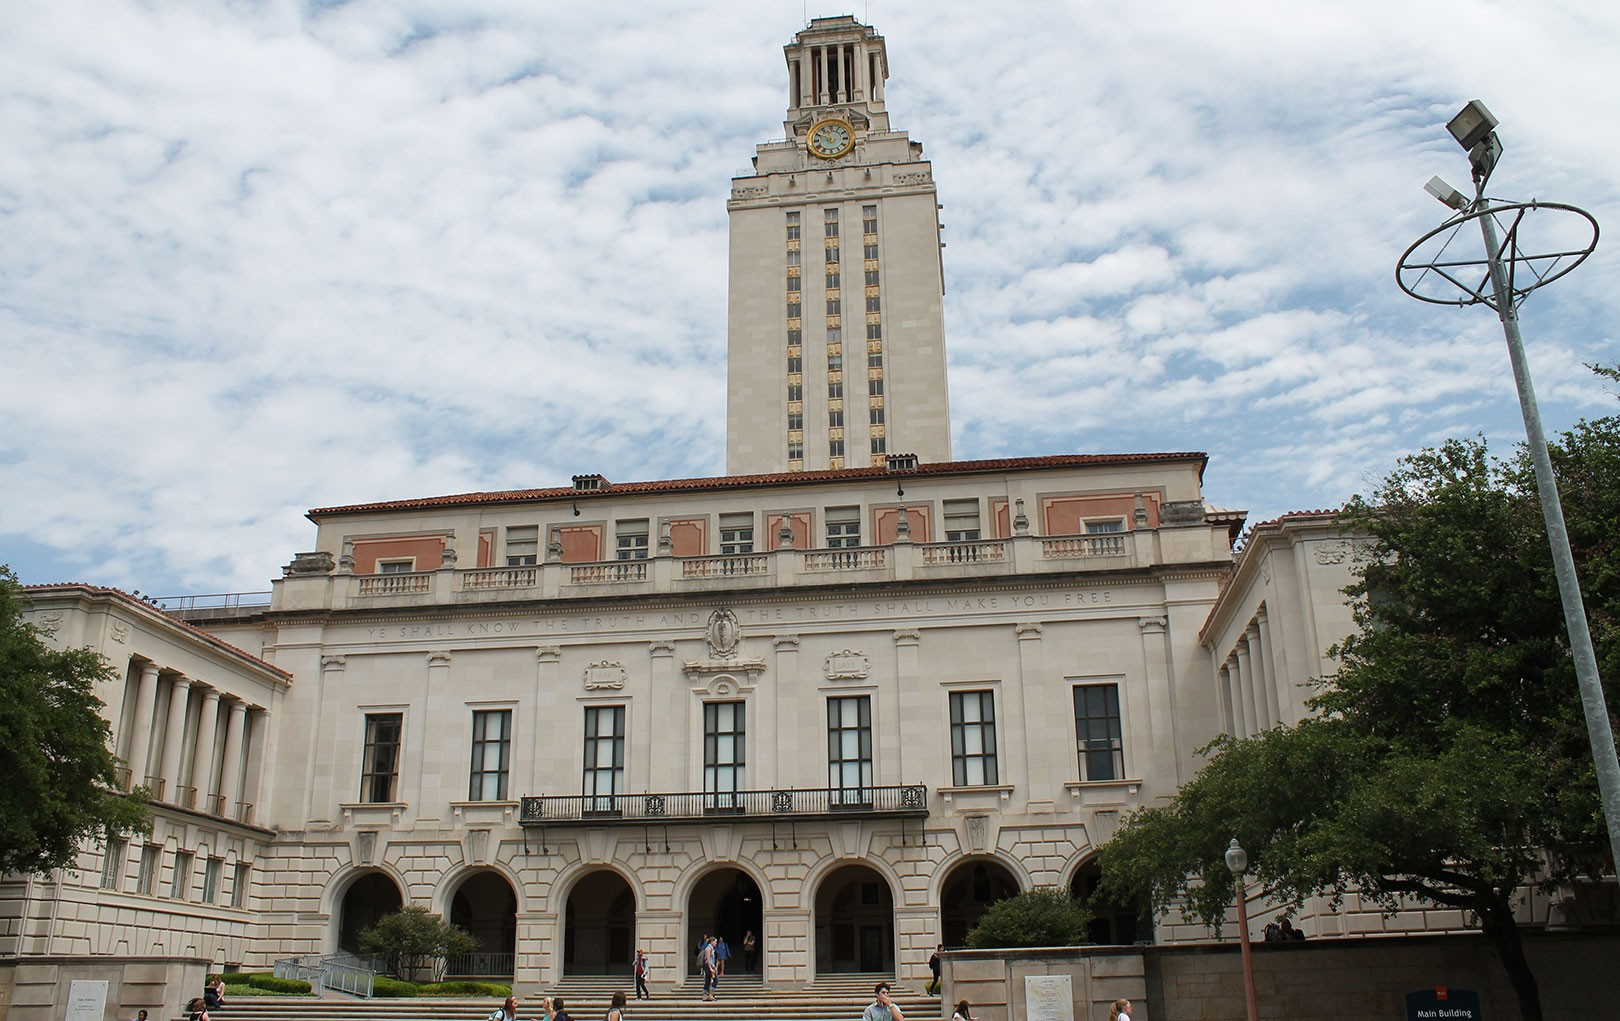 The Main Building at The University of Texas at Austin